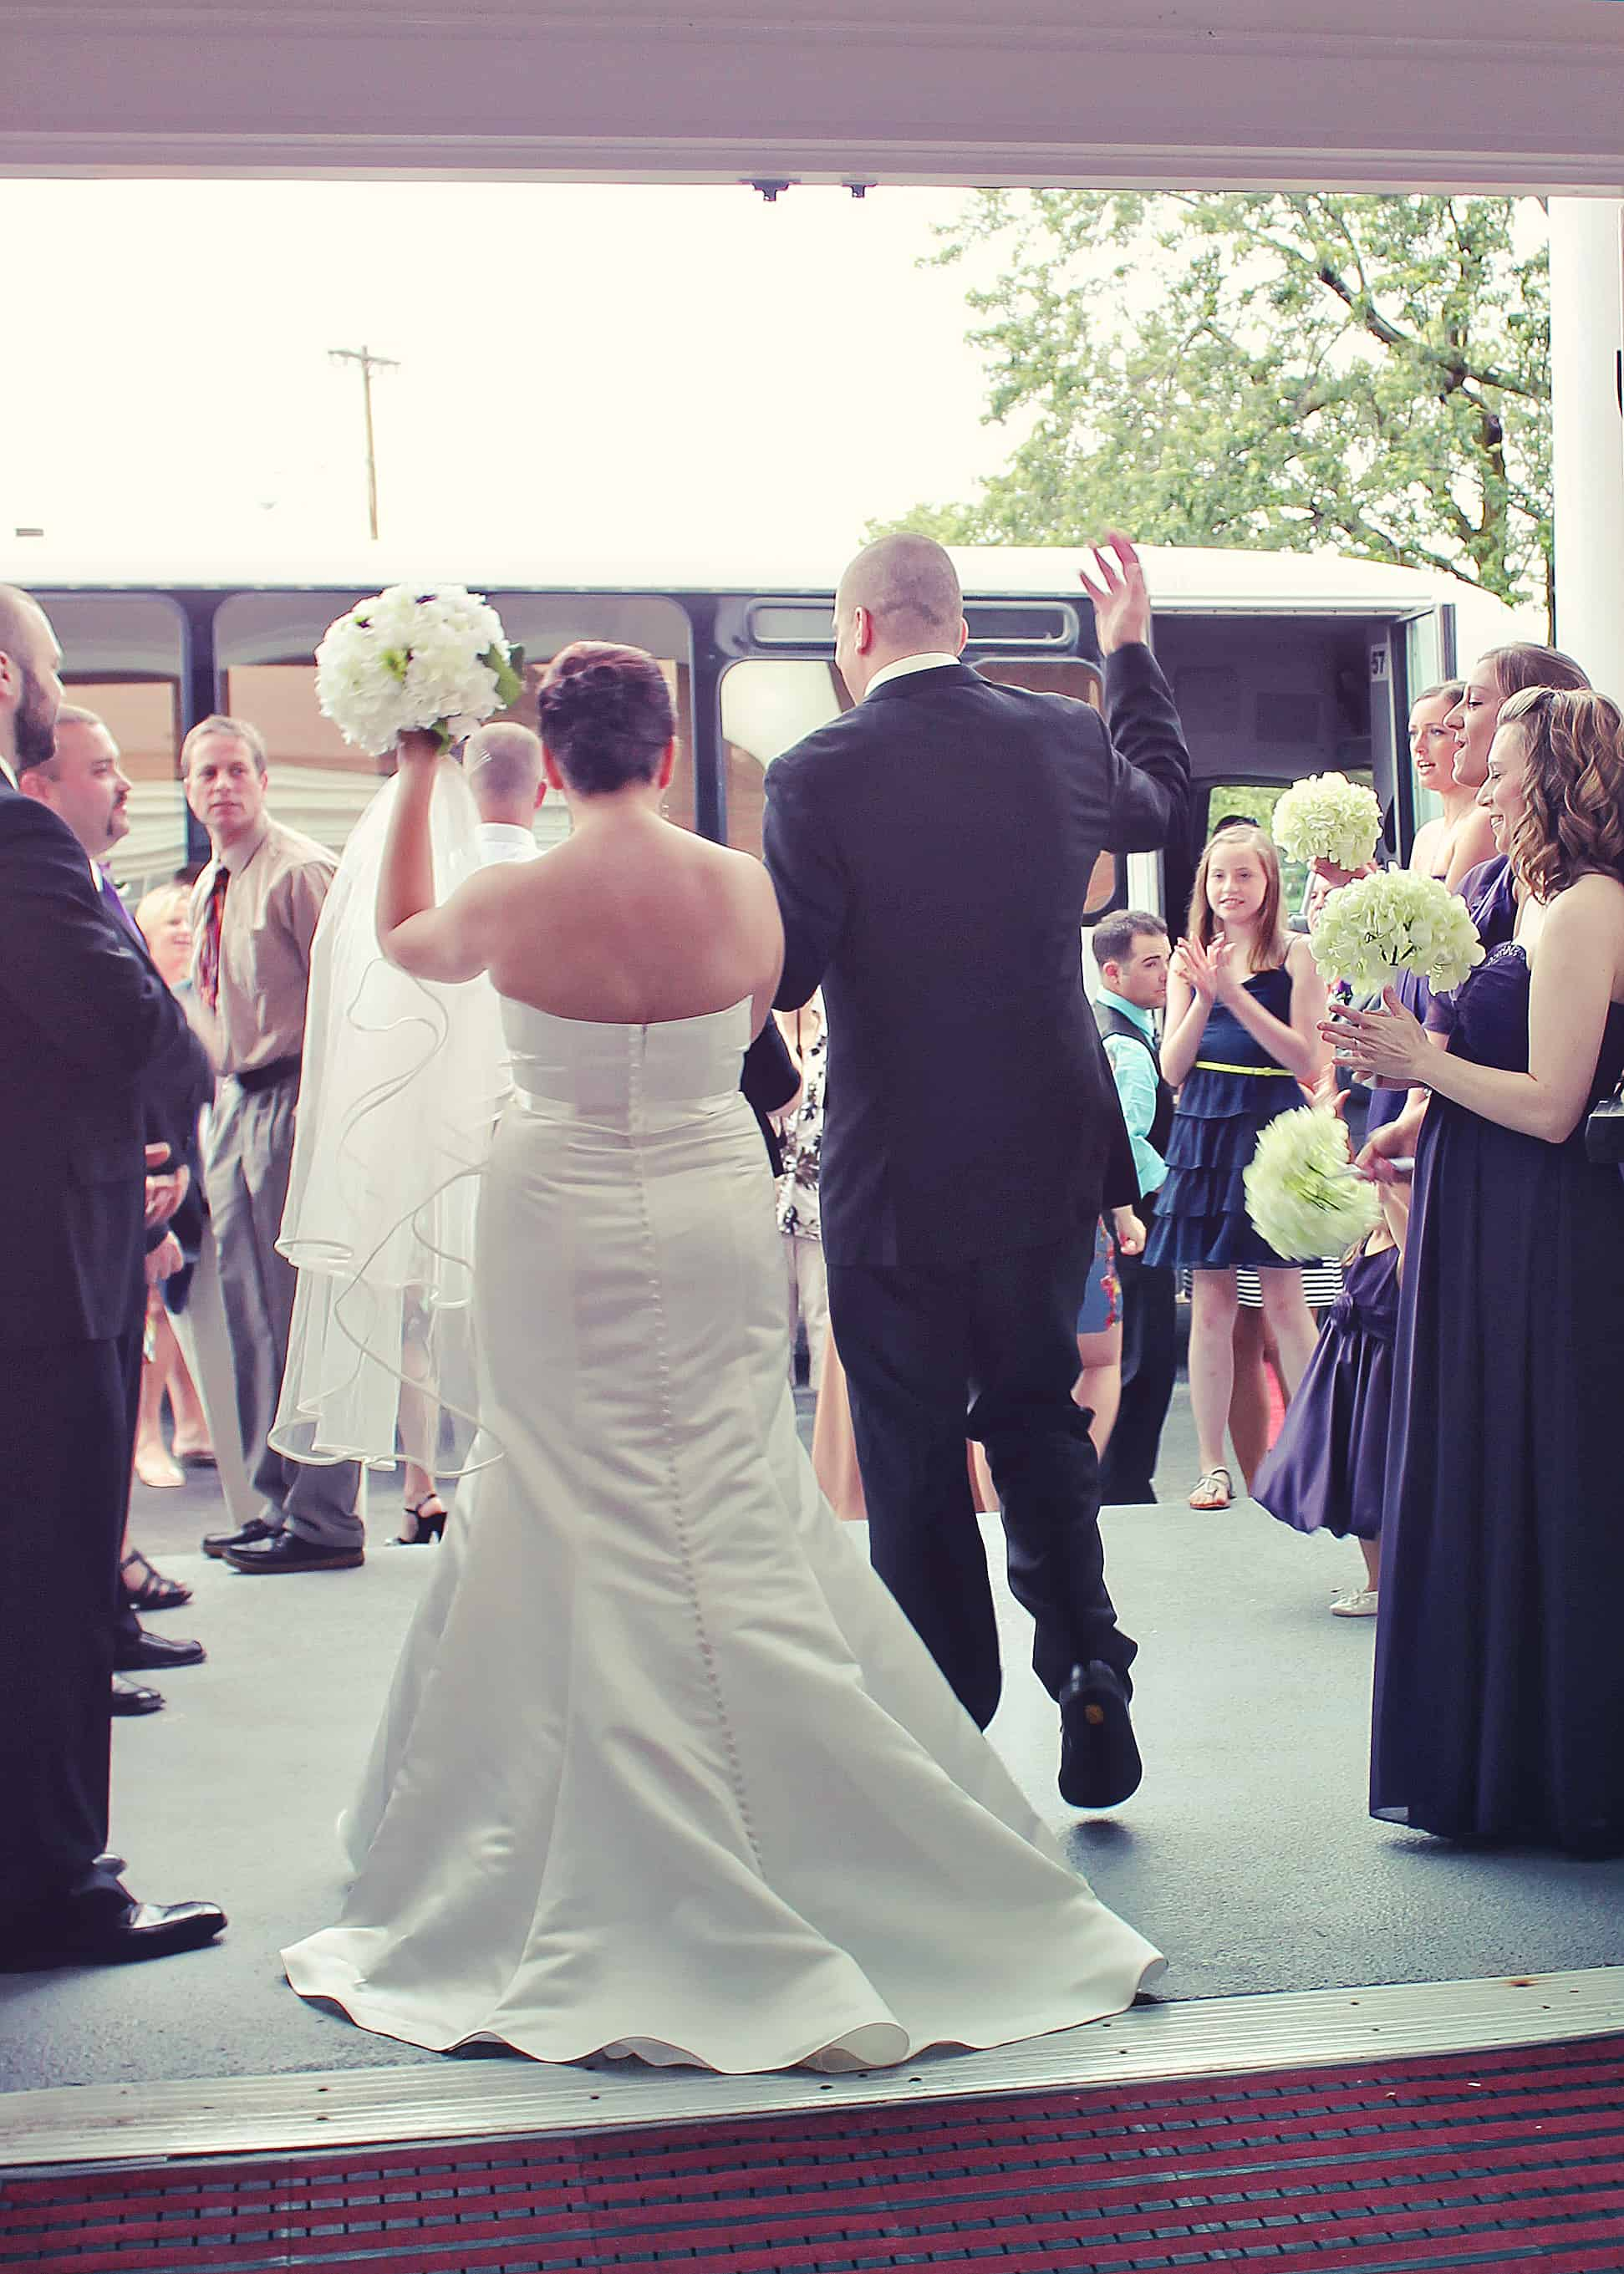 Liberti Wedding | Syracuse, NY